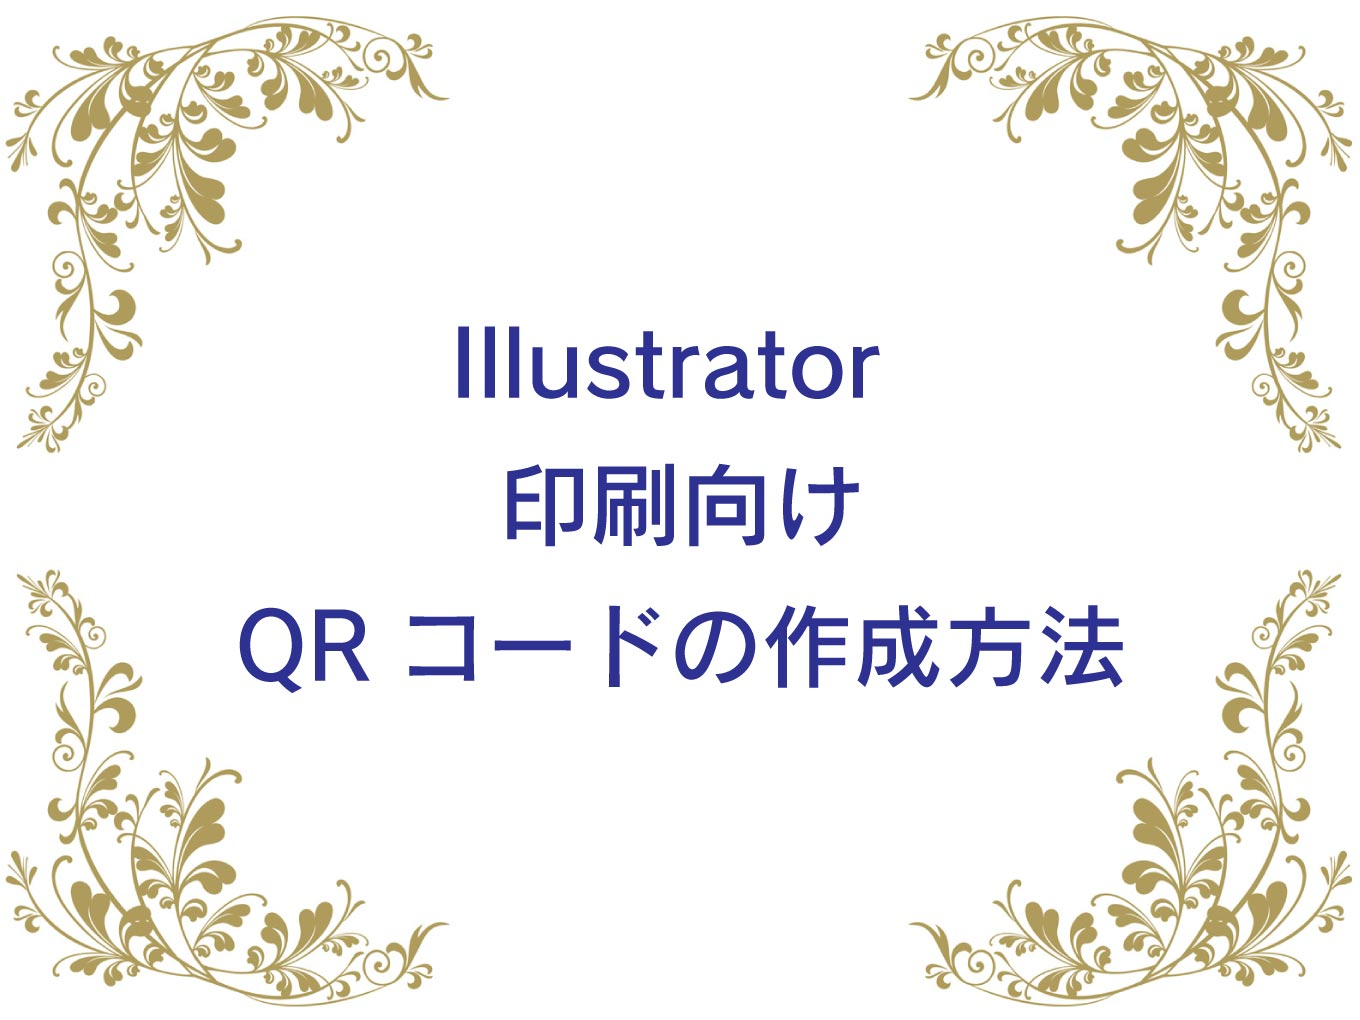 Illustrator qr create top